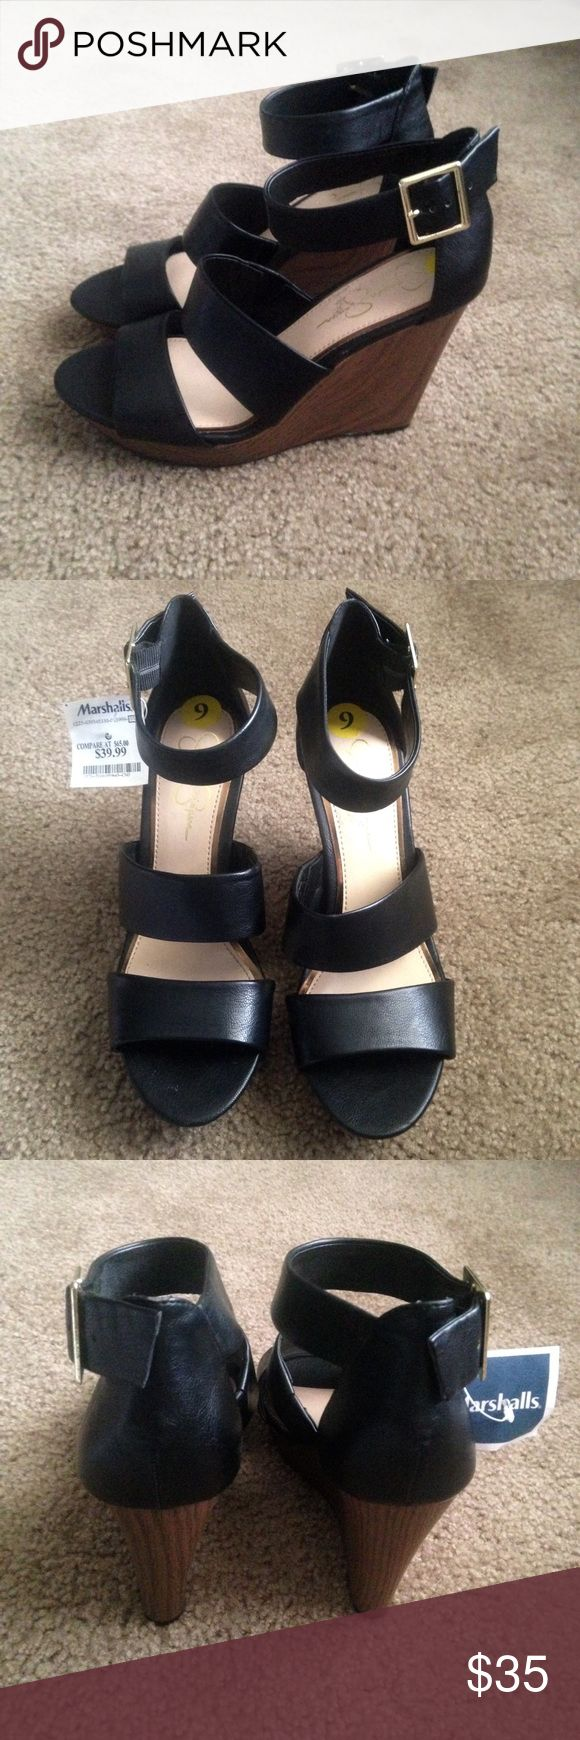 Jessica Simpson wedge shoes size 9 Jessica Simpson wedge shoes size 9 in good condition please look at pictures Jessica Simpson Shoes